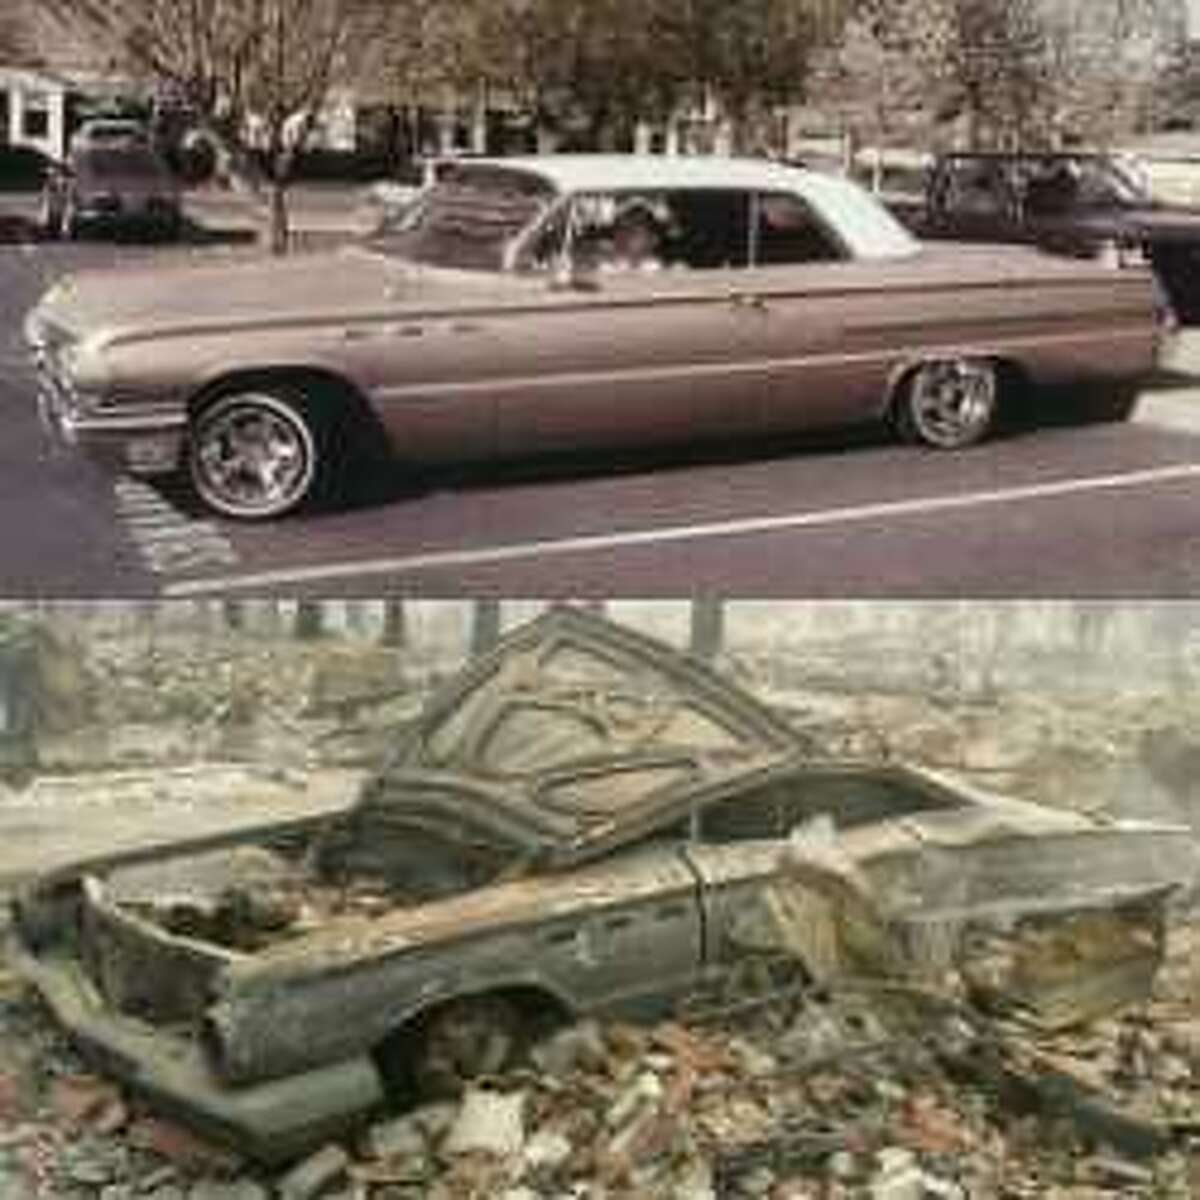 The above photo shows Scott Birdsall's 1962 Buick, which he bought at age 19 and fully restored, before and after the devastating Tubbs Fire, which tore through his Coffey Park neighborhood in October.